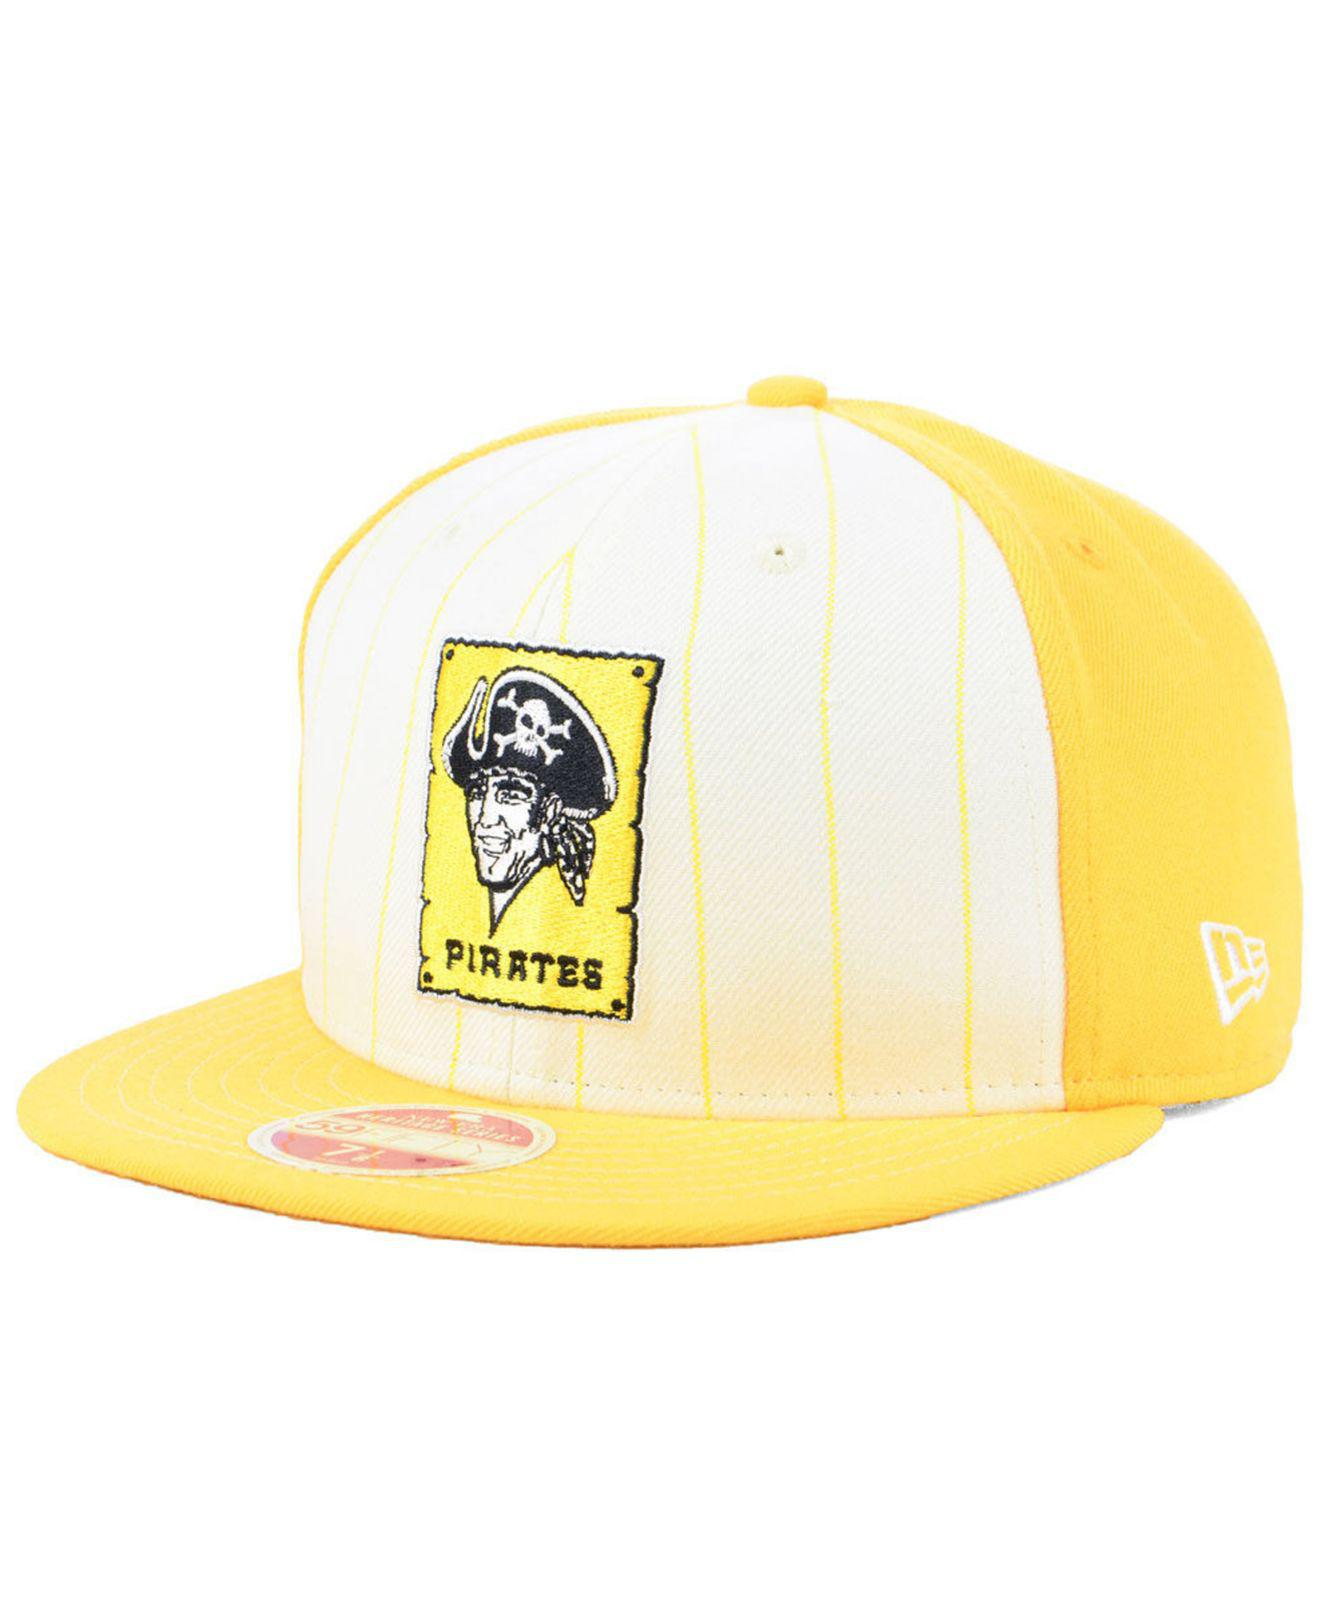 Lyst - KTZ Pittsburgh Pirates Vintage Front 59fifty Fitted Cap for Men c9099d1bdf45